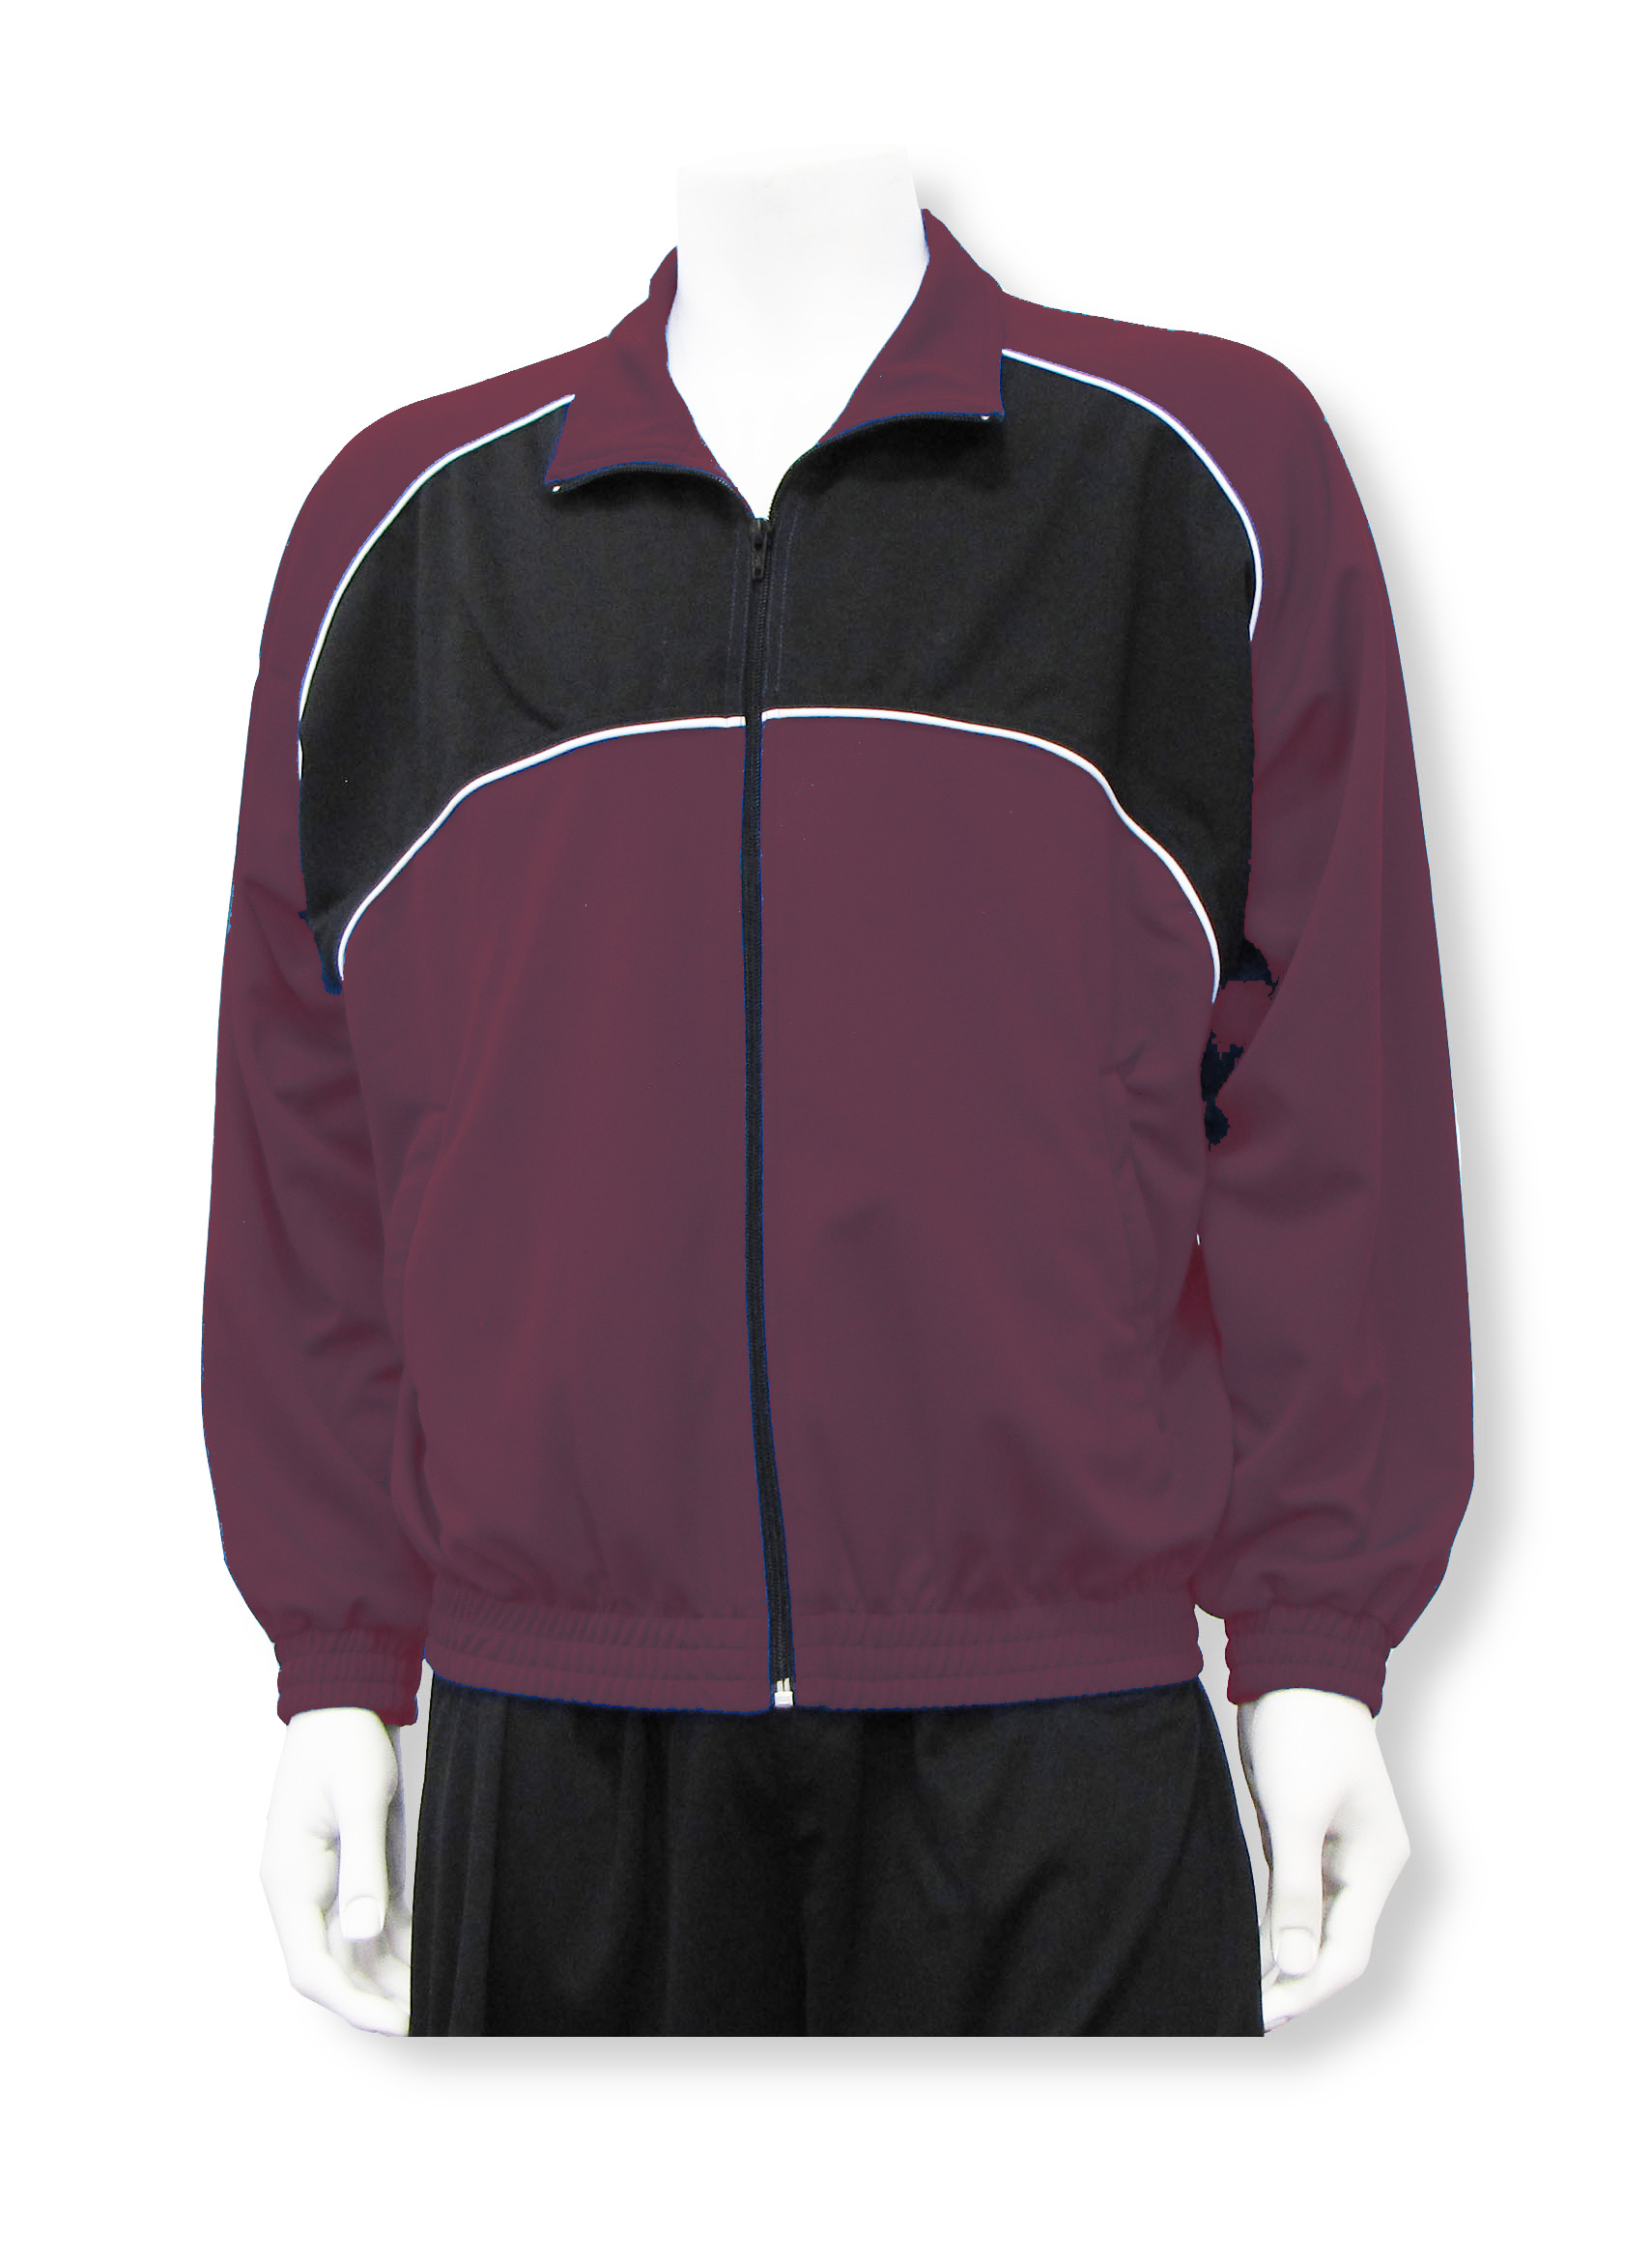 Crossfire soccer warm up jacket in maroon by Code Four Athletics